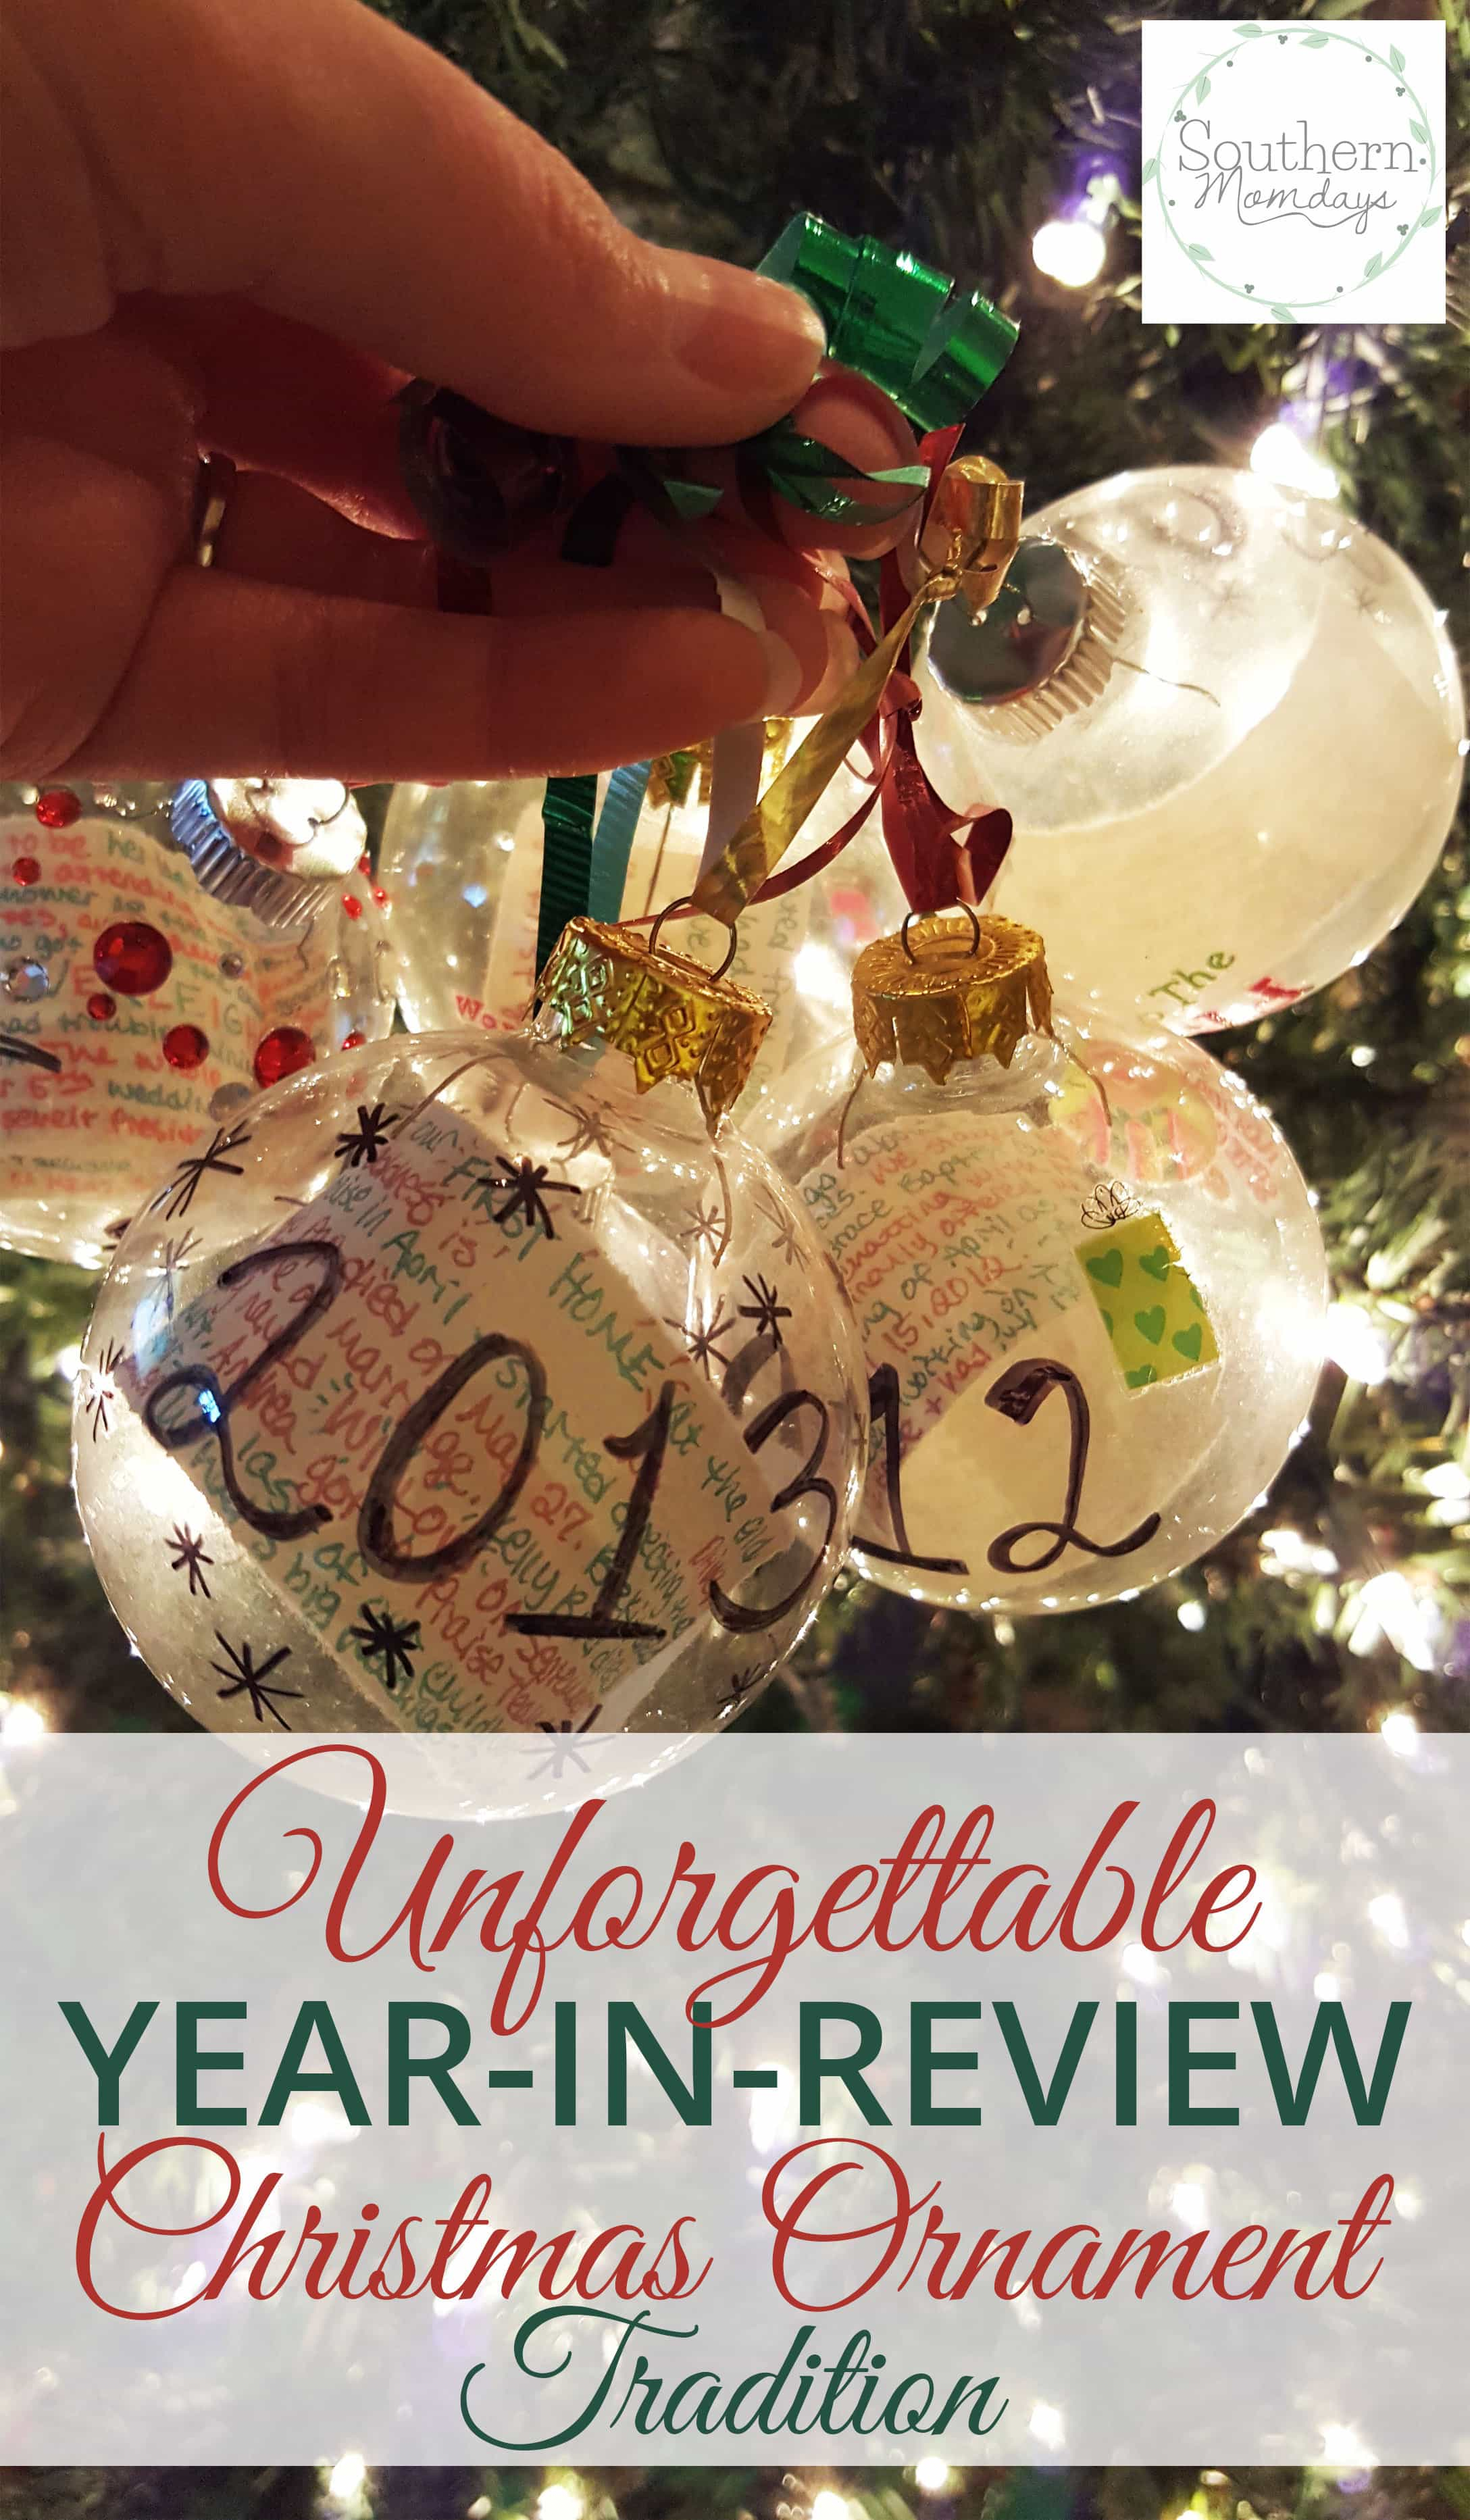 the unforgettable year in review christmas ornament tradition that my husband loves featured - What To Buy My Husband For Christmas